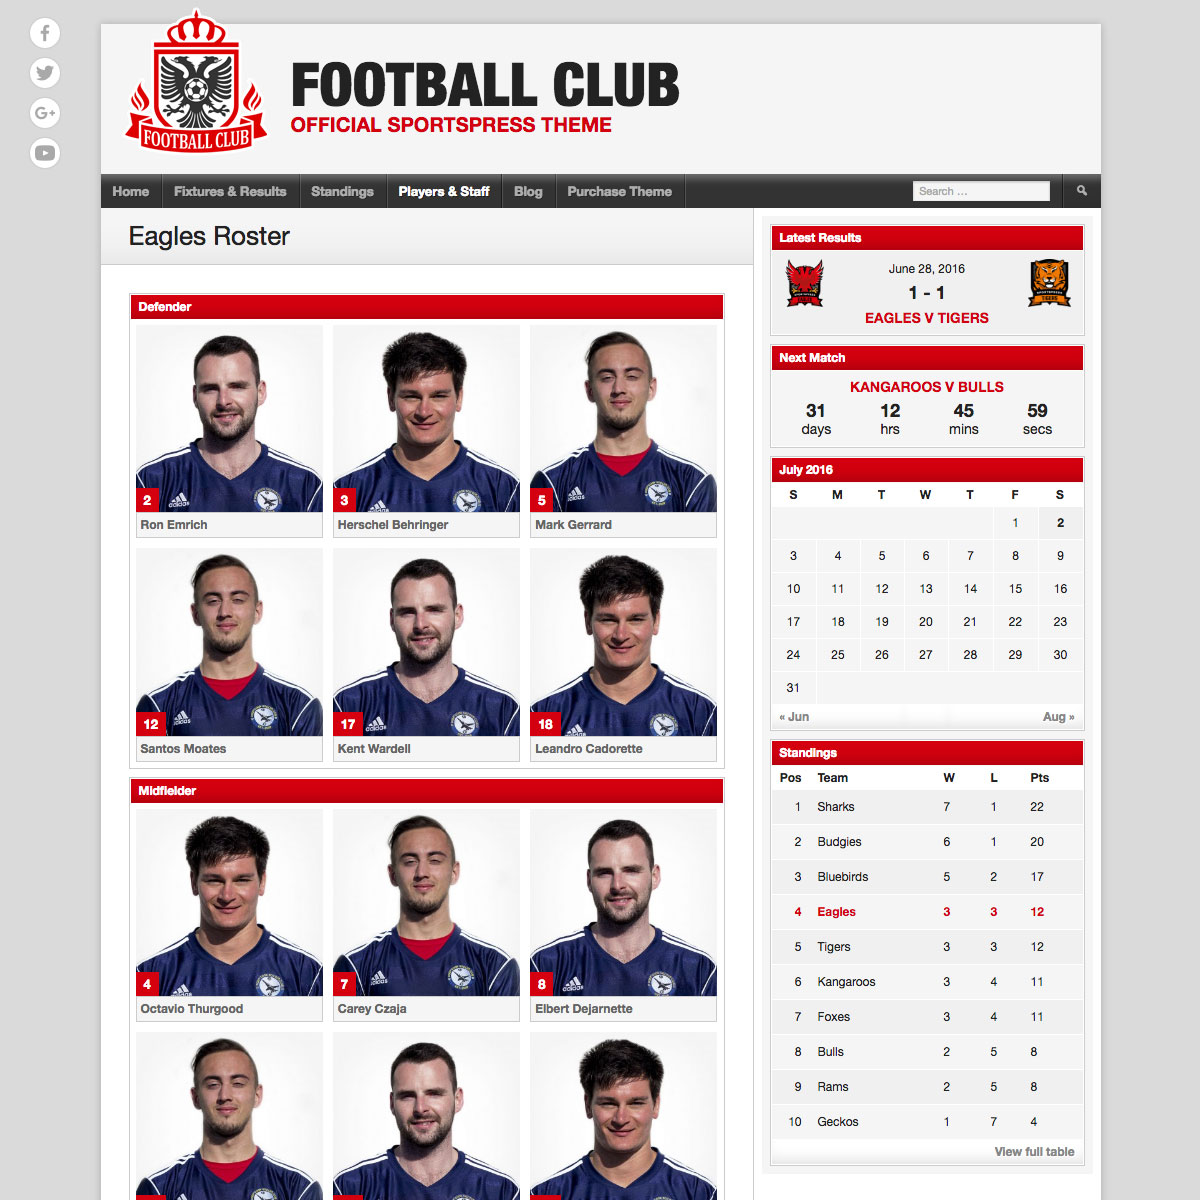 Football Club team profile